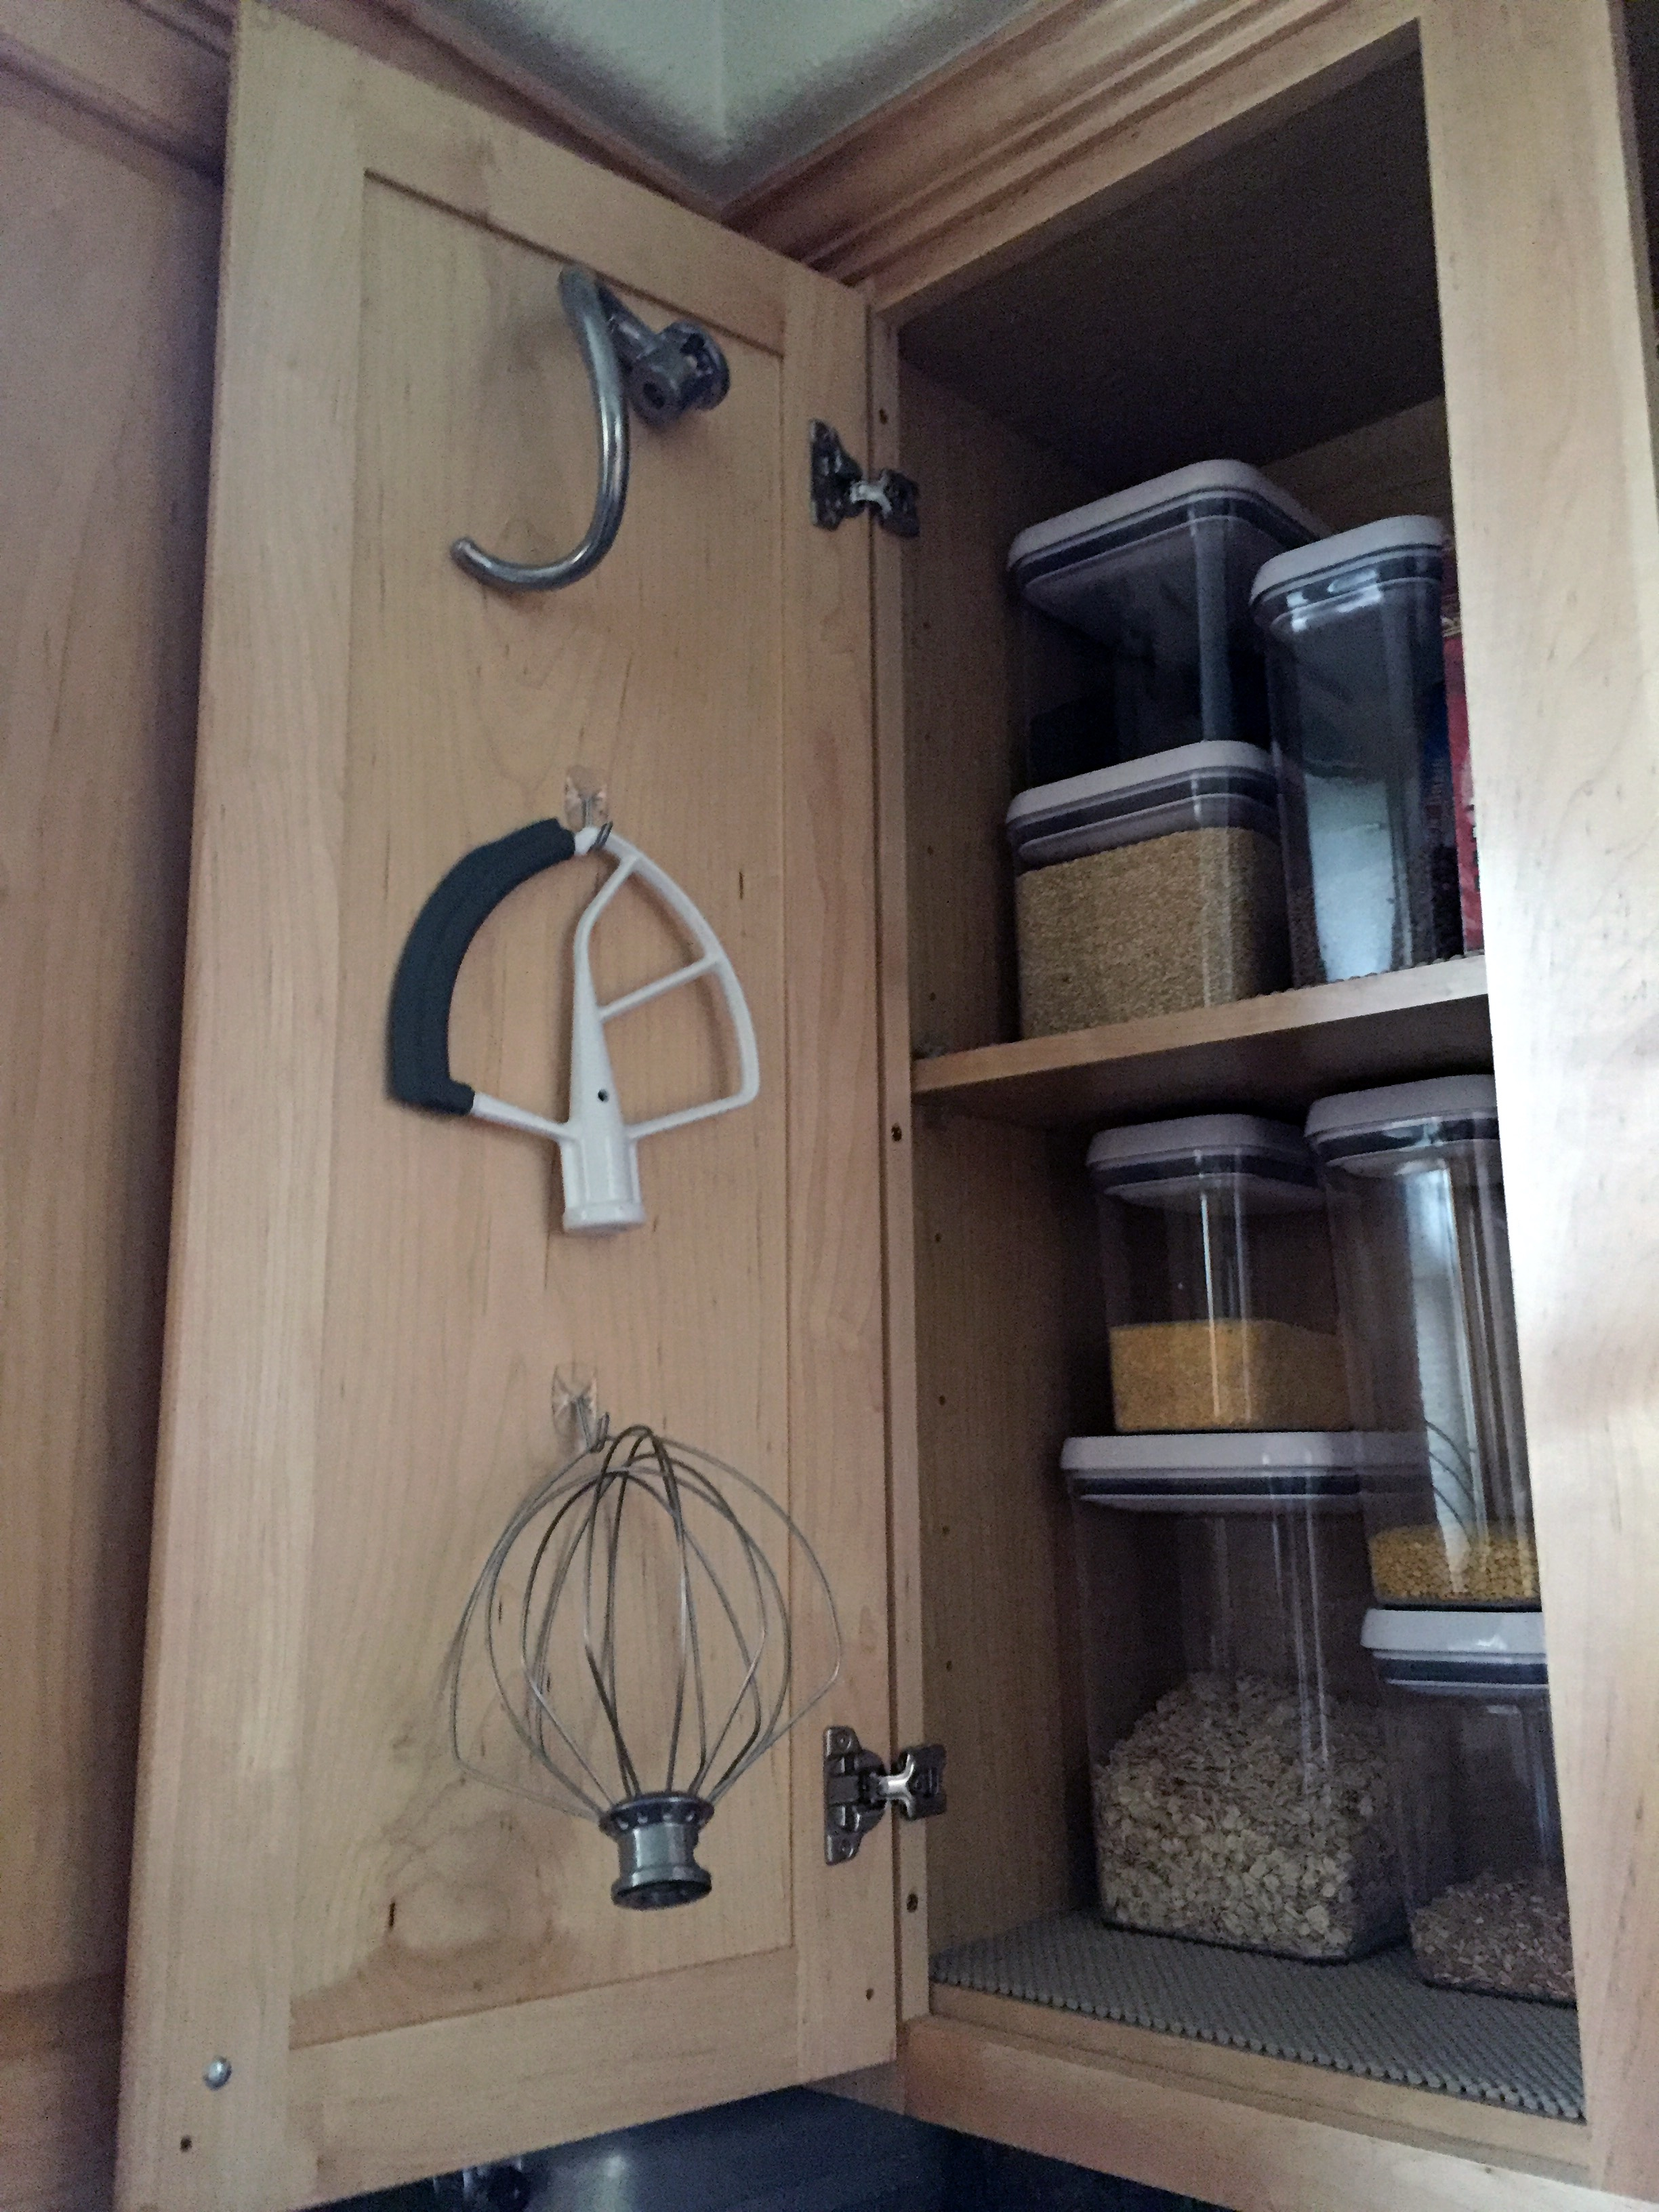 KitchenAid Accessory Organization